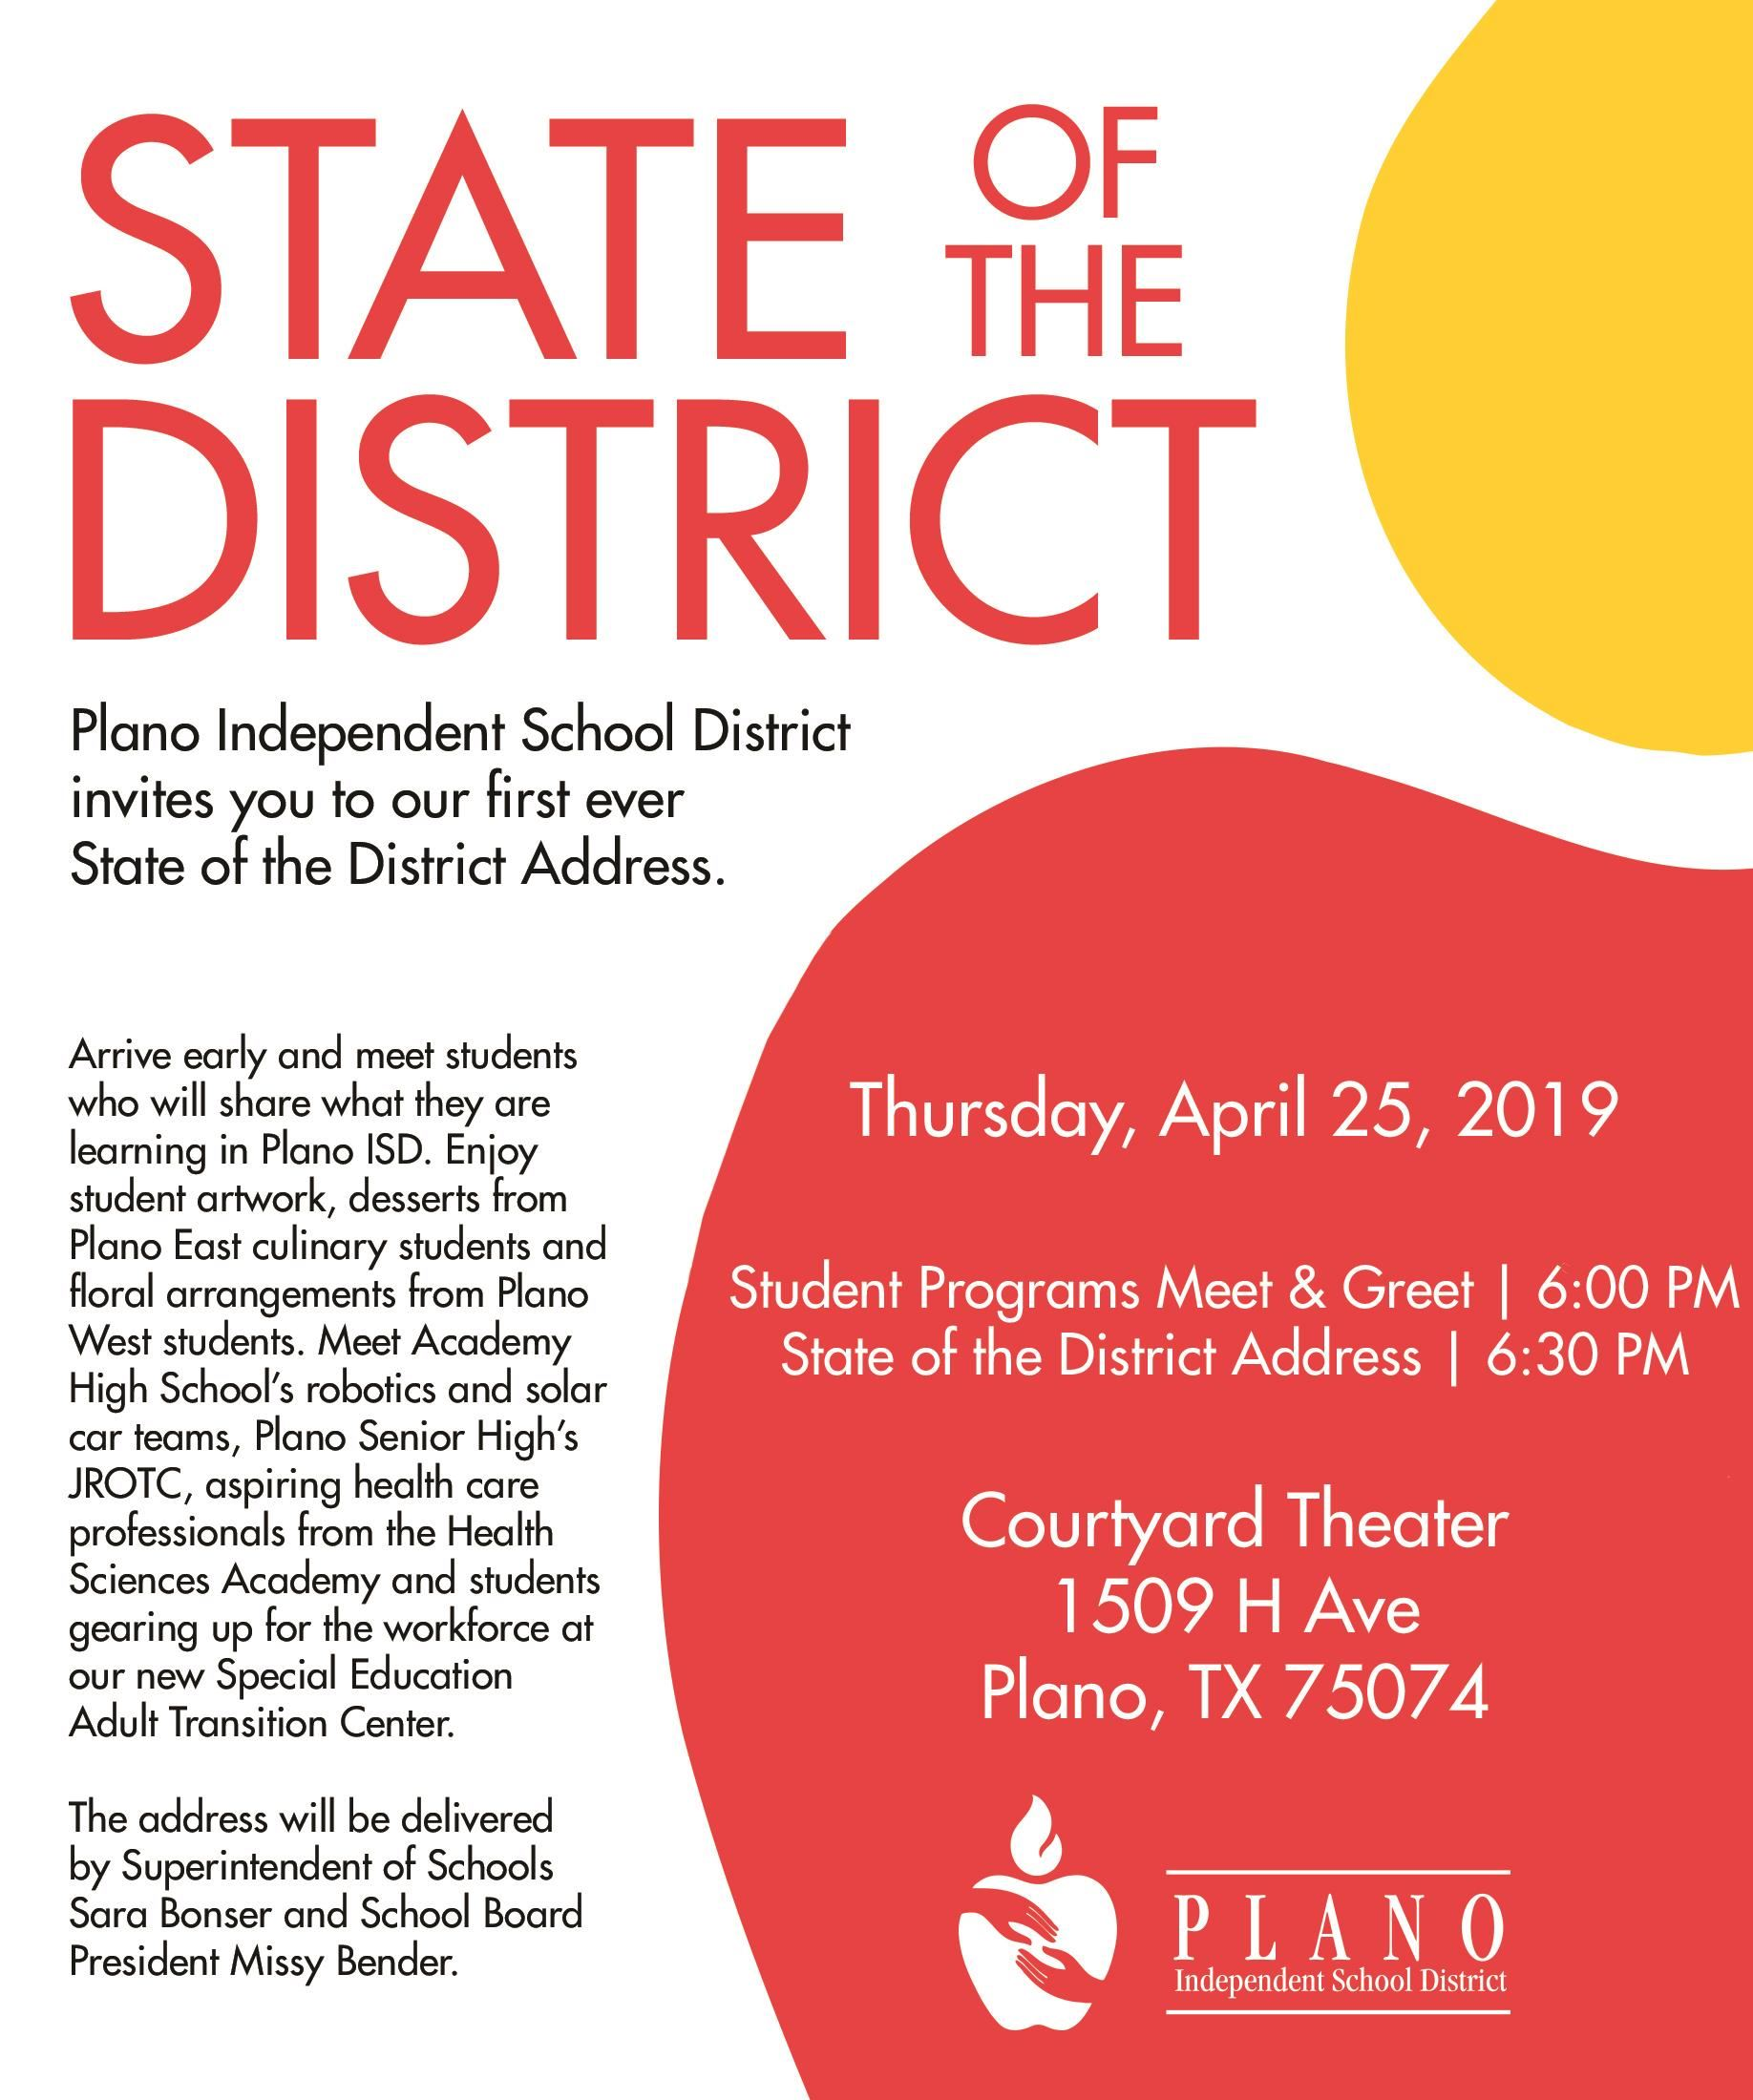 Plano ISD State of the District Address is April 25, 2019 at 6 PM at Courtyard Theater in Plano